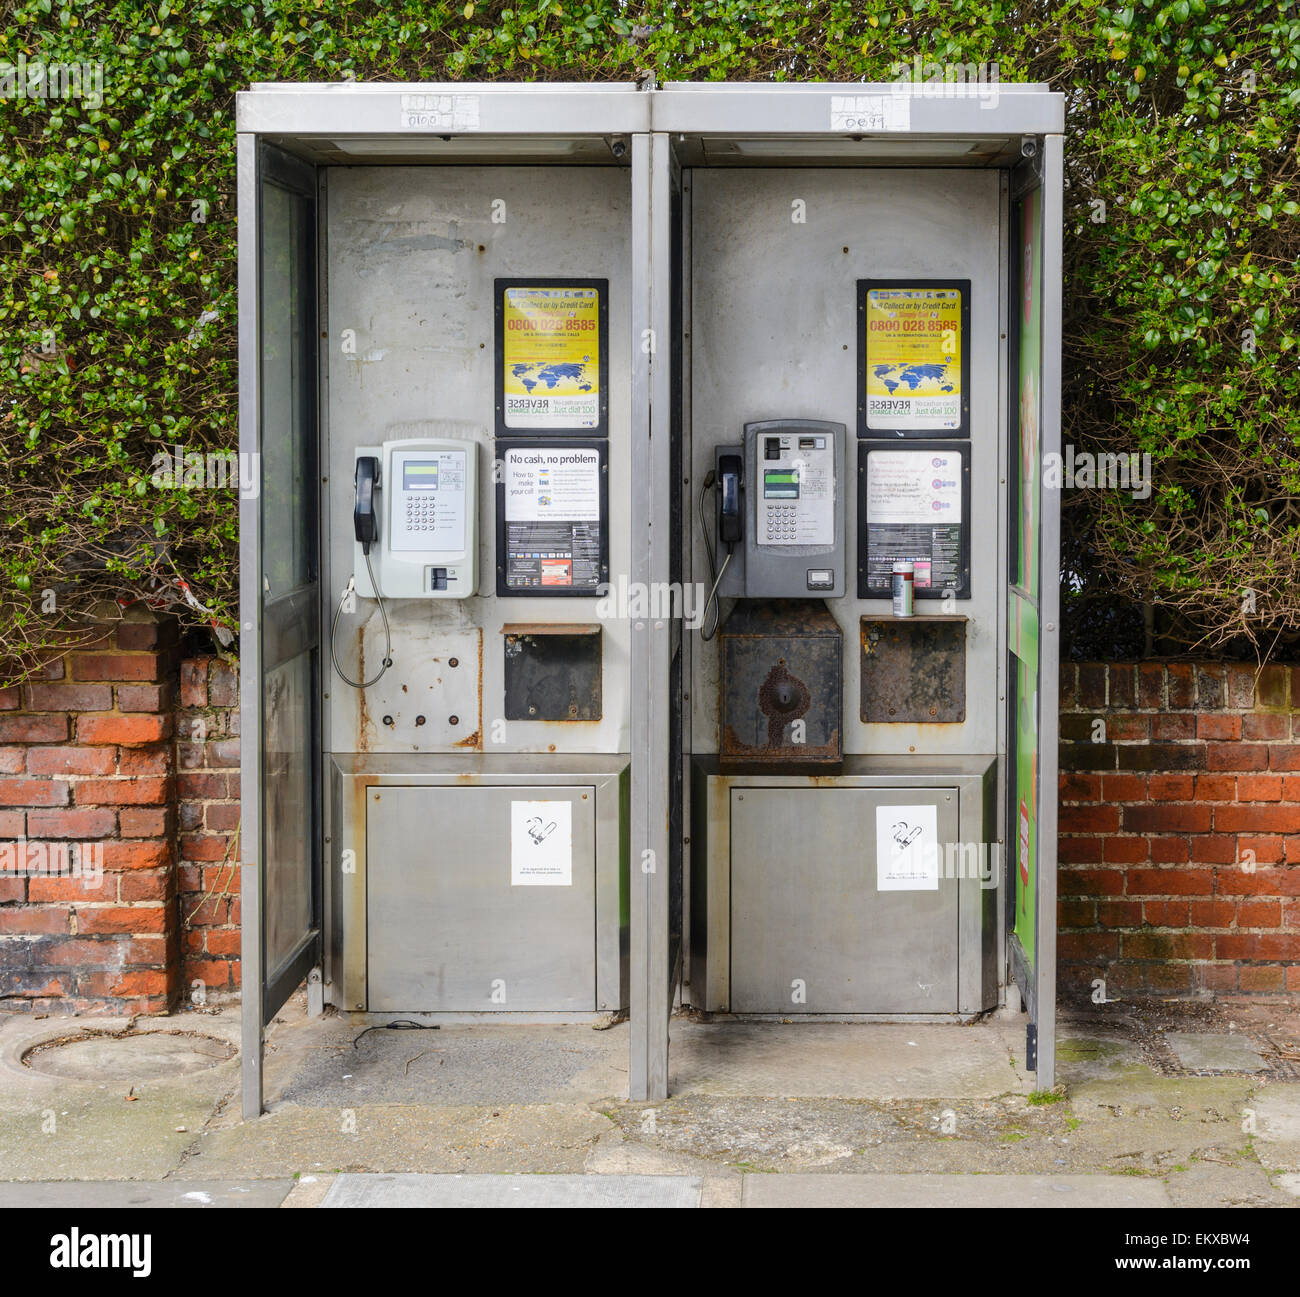 BT telephone kiosk type KX100, in England, UK. - Stock Image